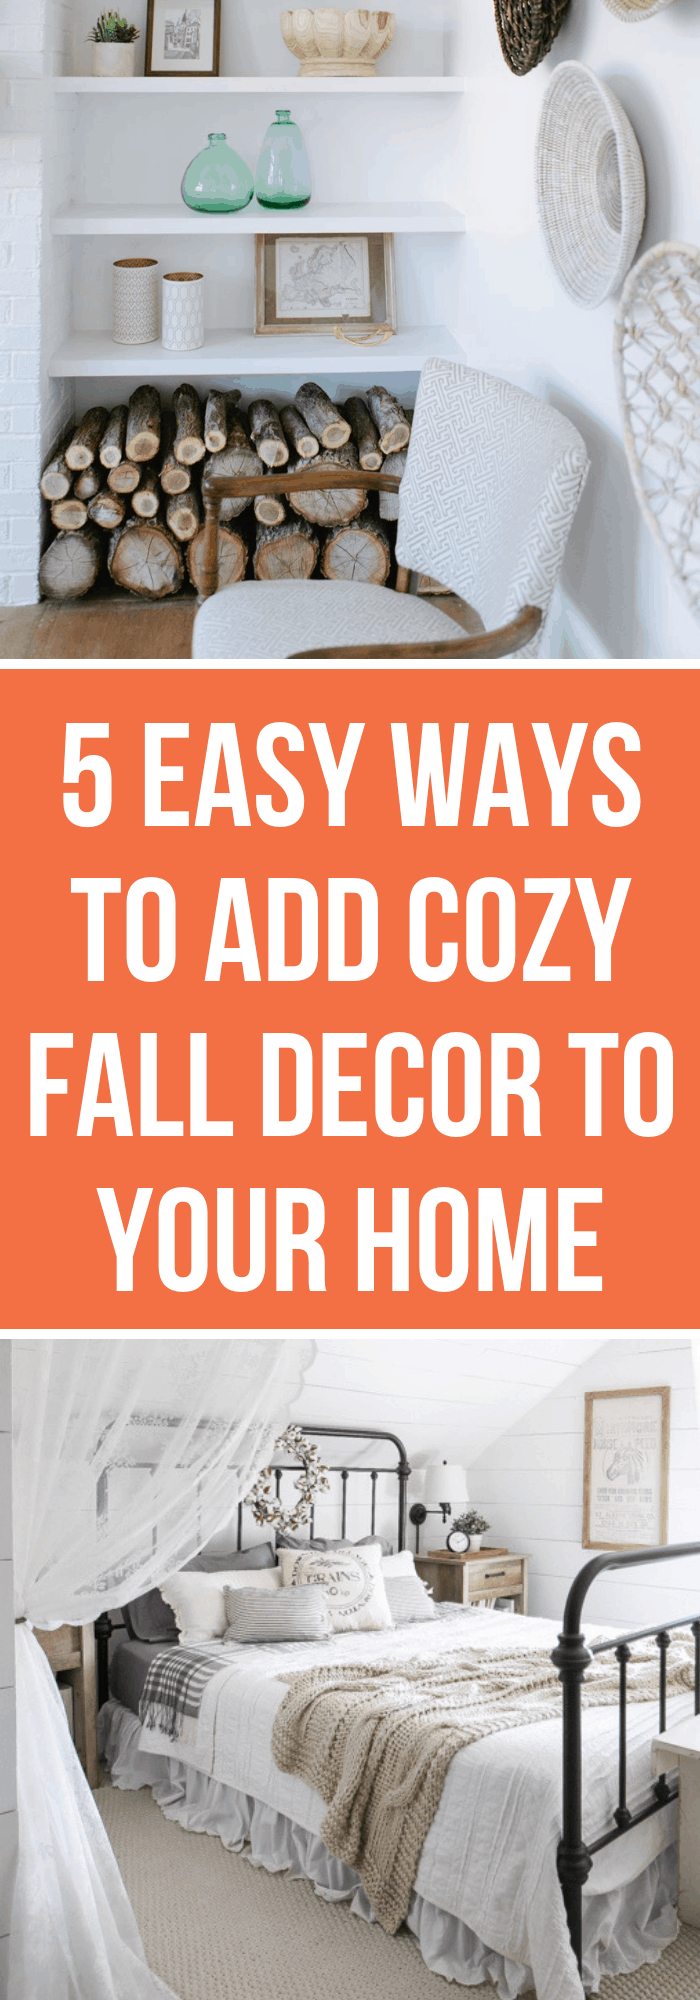 5 Easy Ways to Add Cozy Fall Home Decor